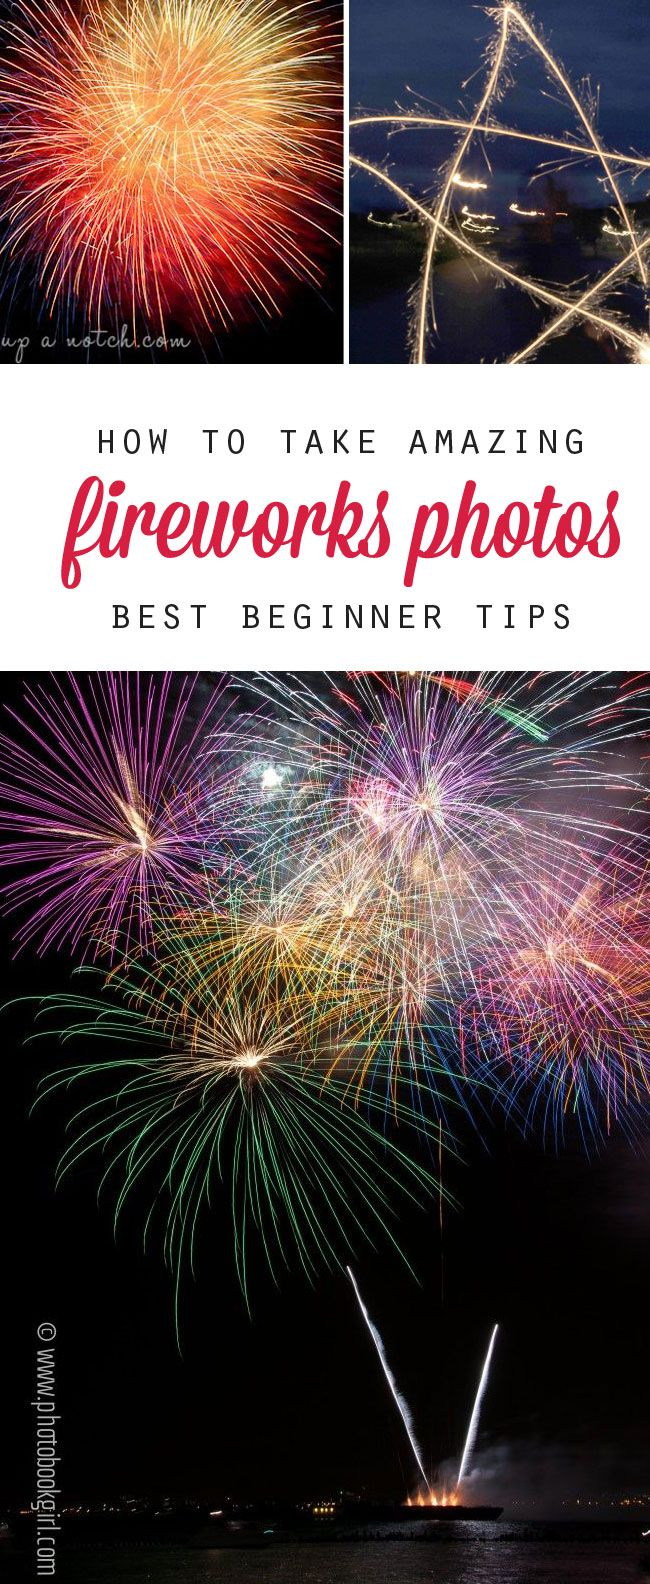 how to get better fireworks photos this Fourth of July ...